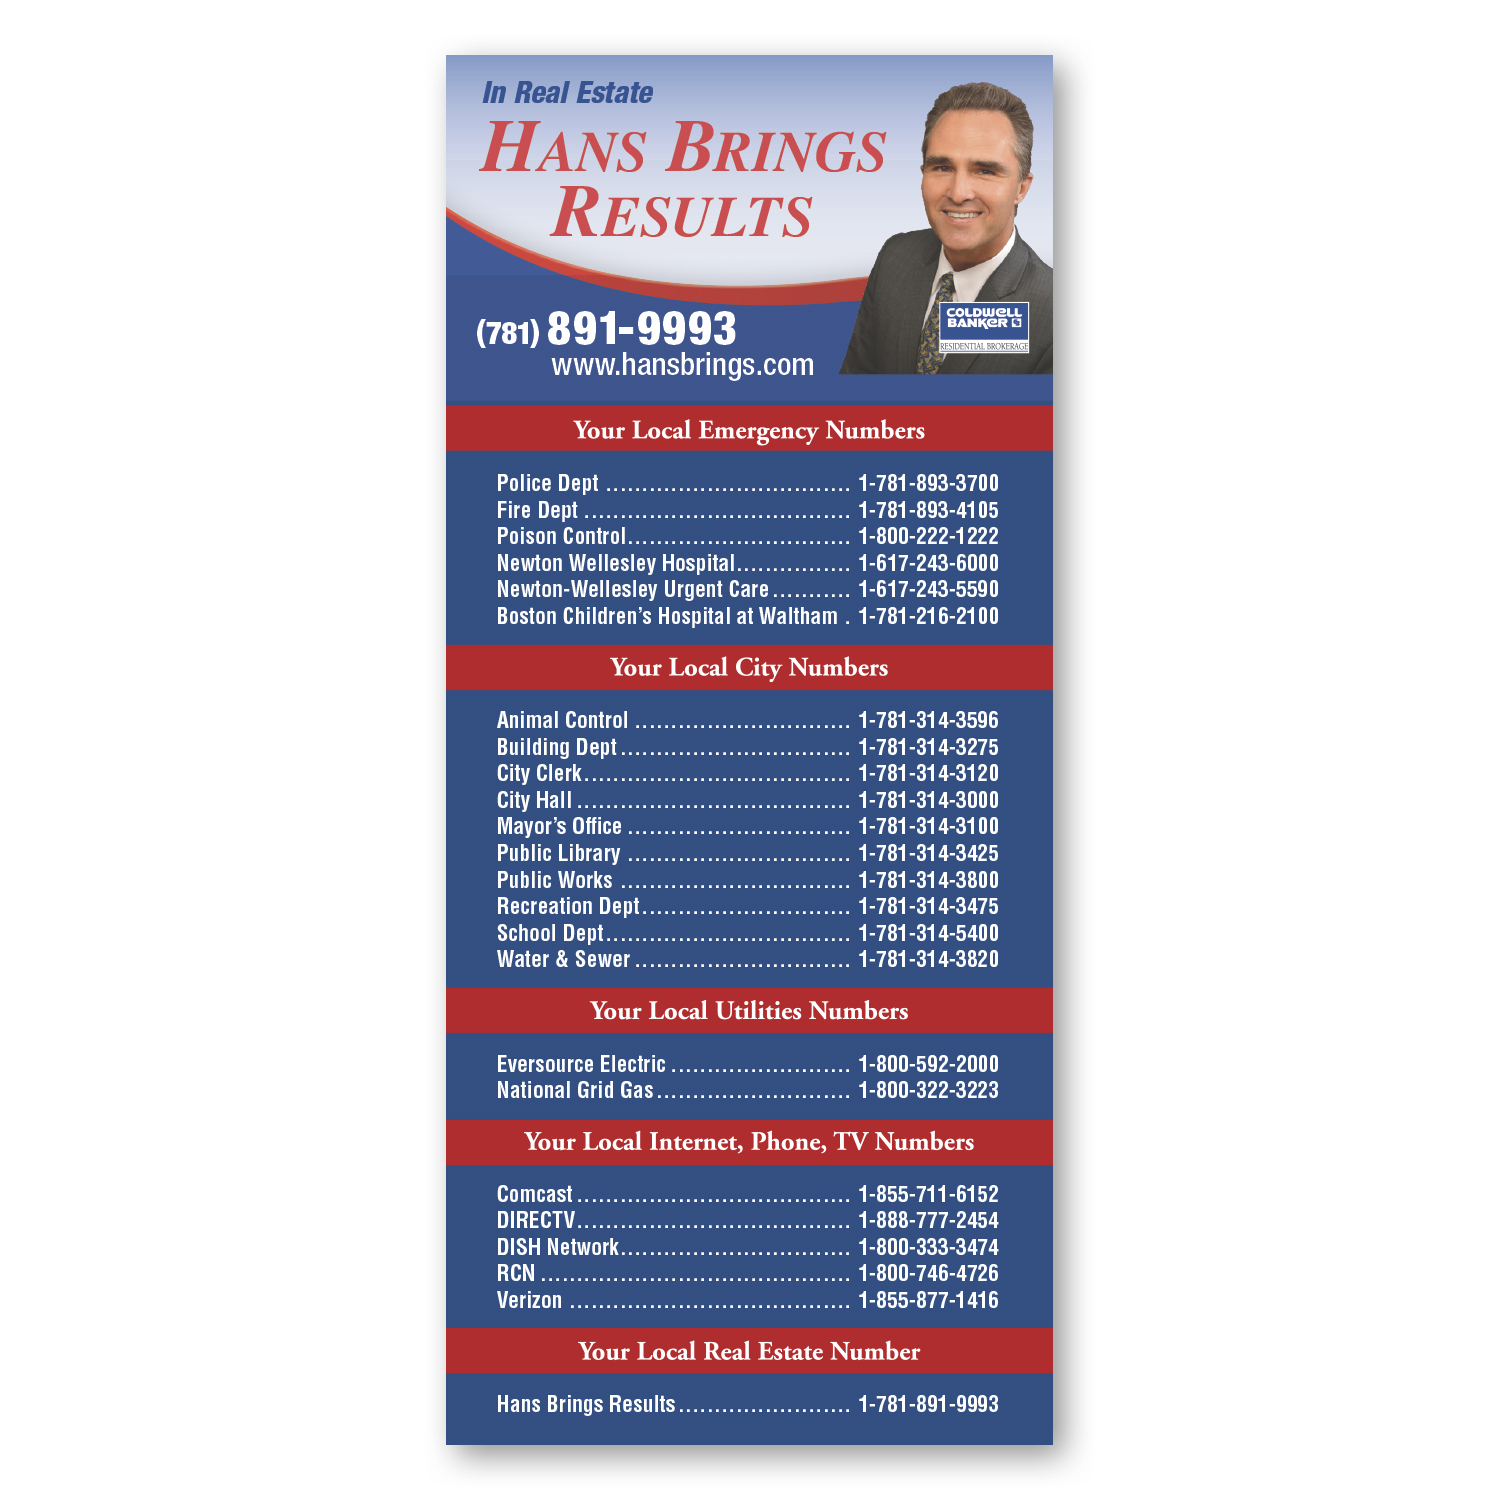 "• SCH14 Stock Magnet, 3.5"" x 8"", .020 thickness  • 10,000 piece order for Coldwell Banker agent to use as a leave behind at open houses for potential buyers."